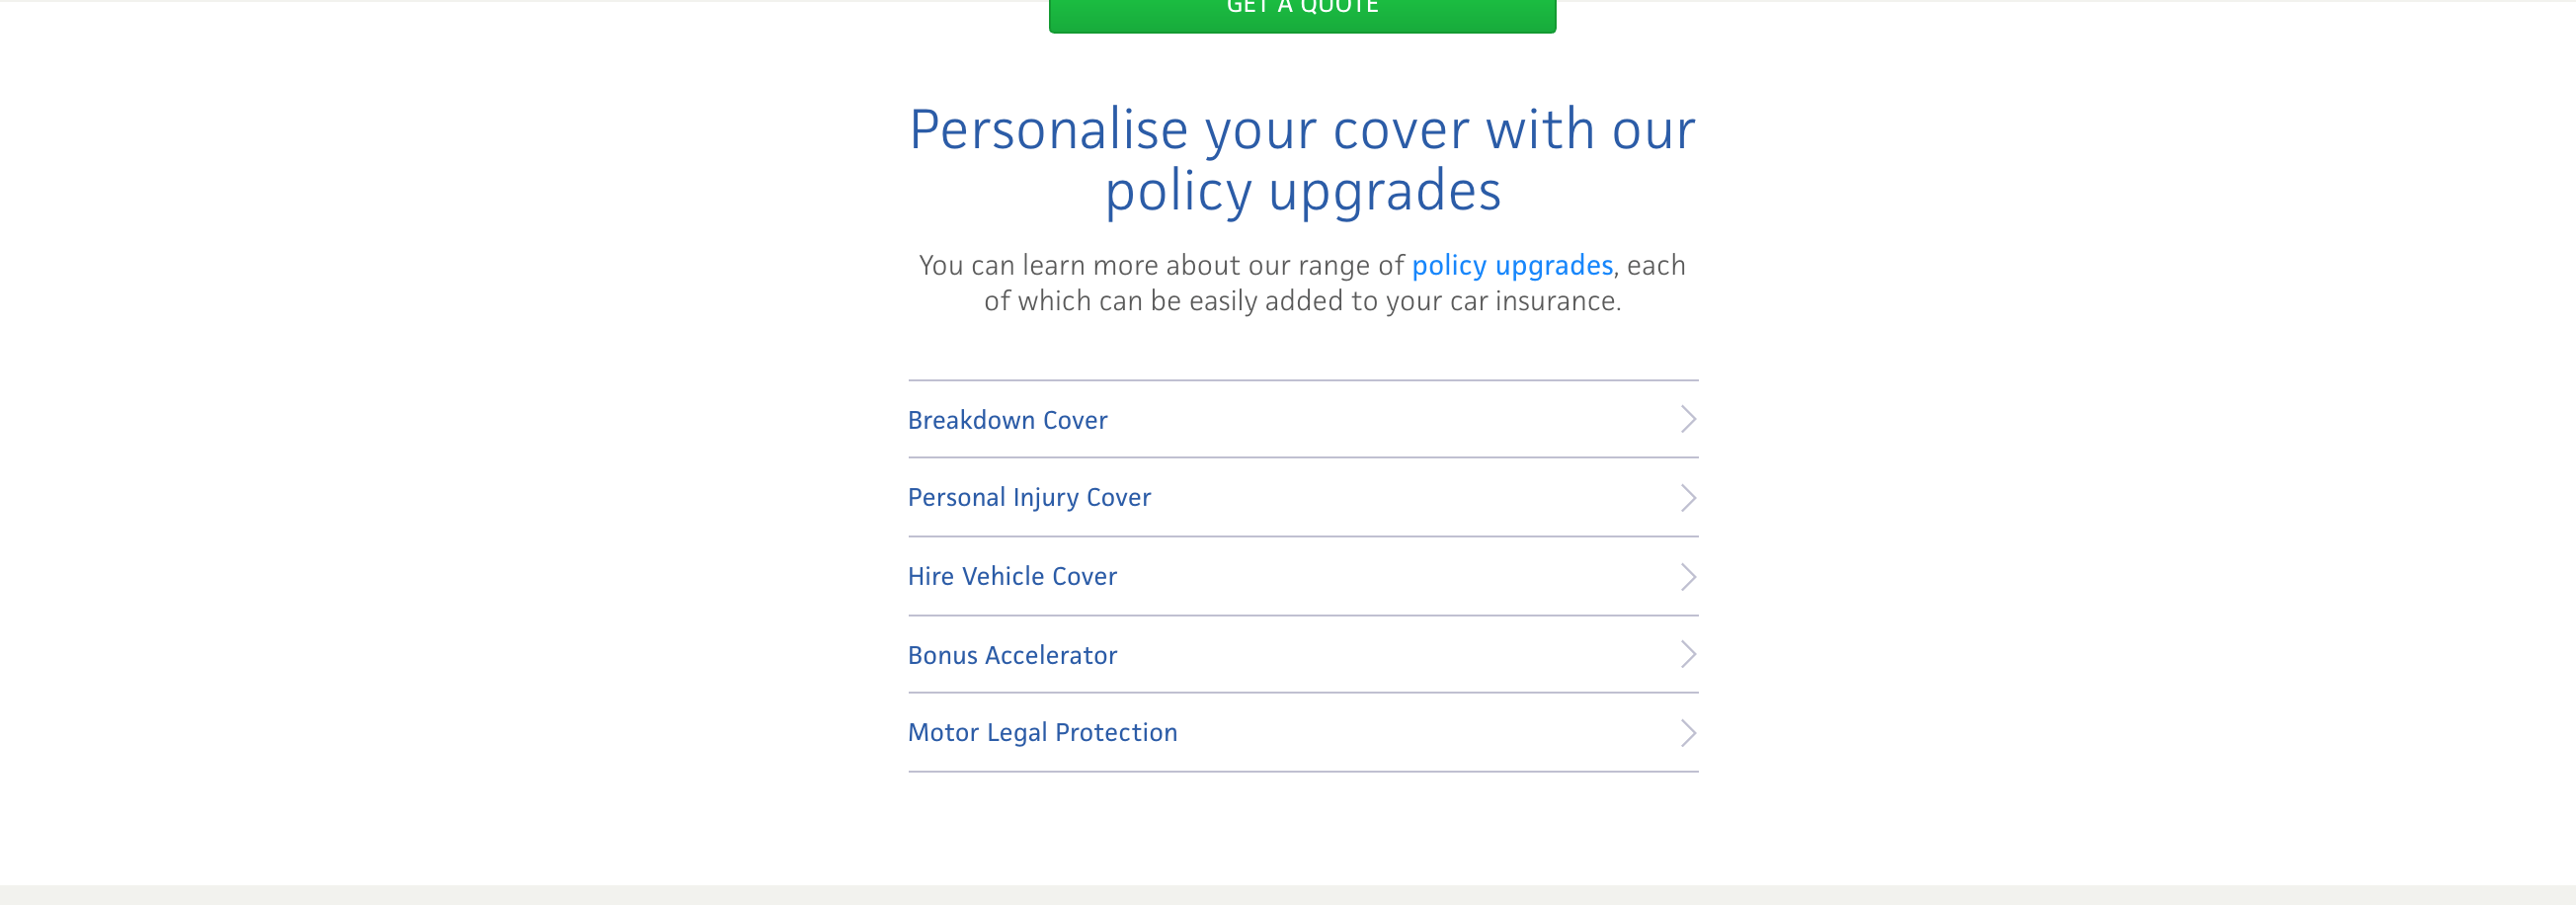 Admiral Breakdown Number >> Admiral Policy Upgrades As Personalisation Insurance